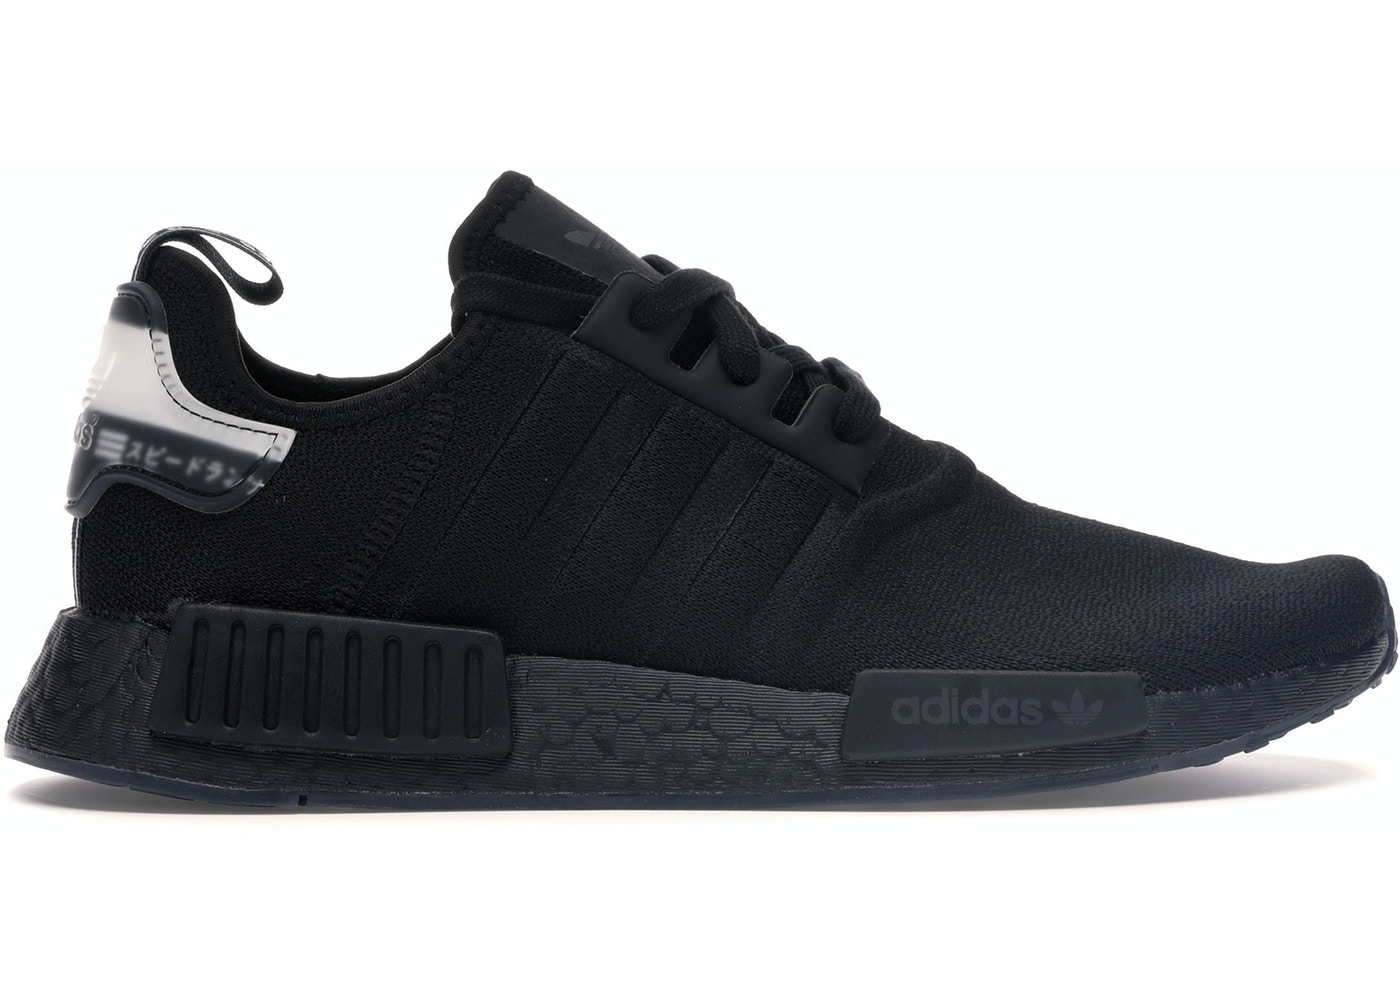 Adidas Nmd R1 Molded Stripes Black Bd7745